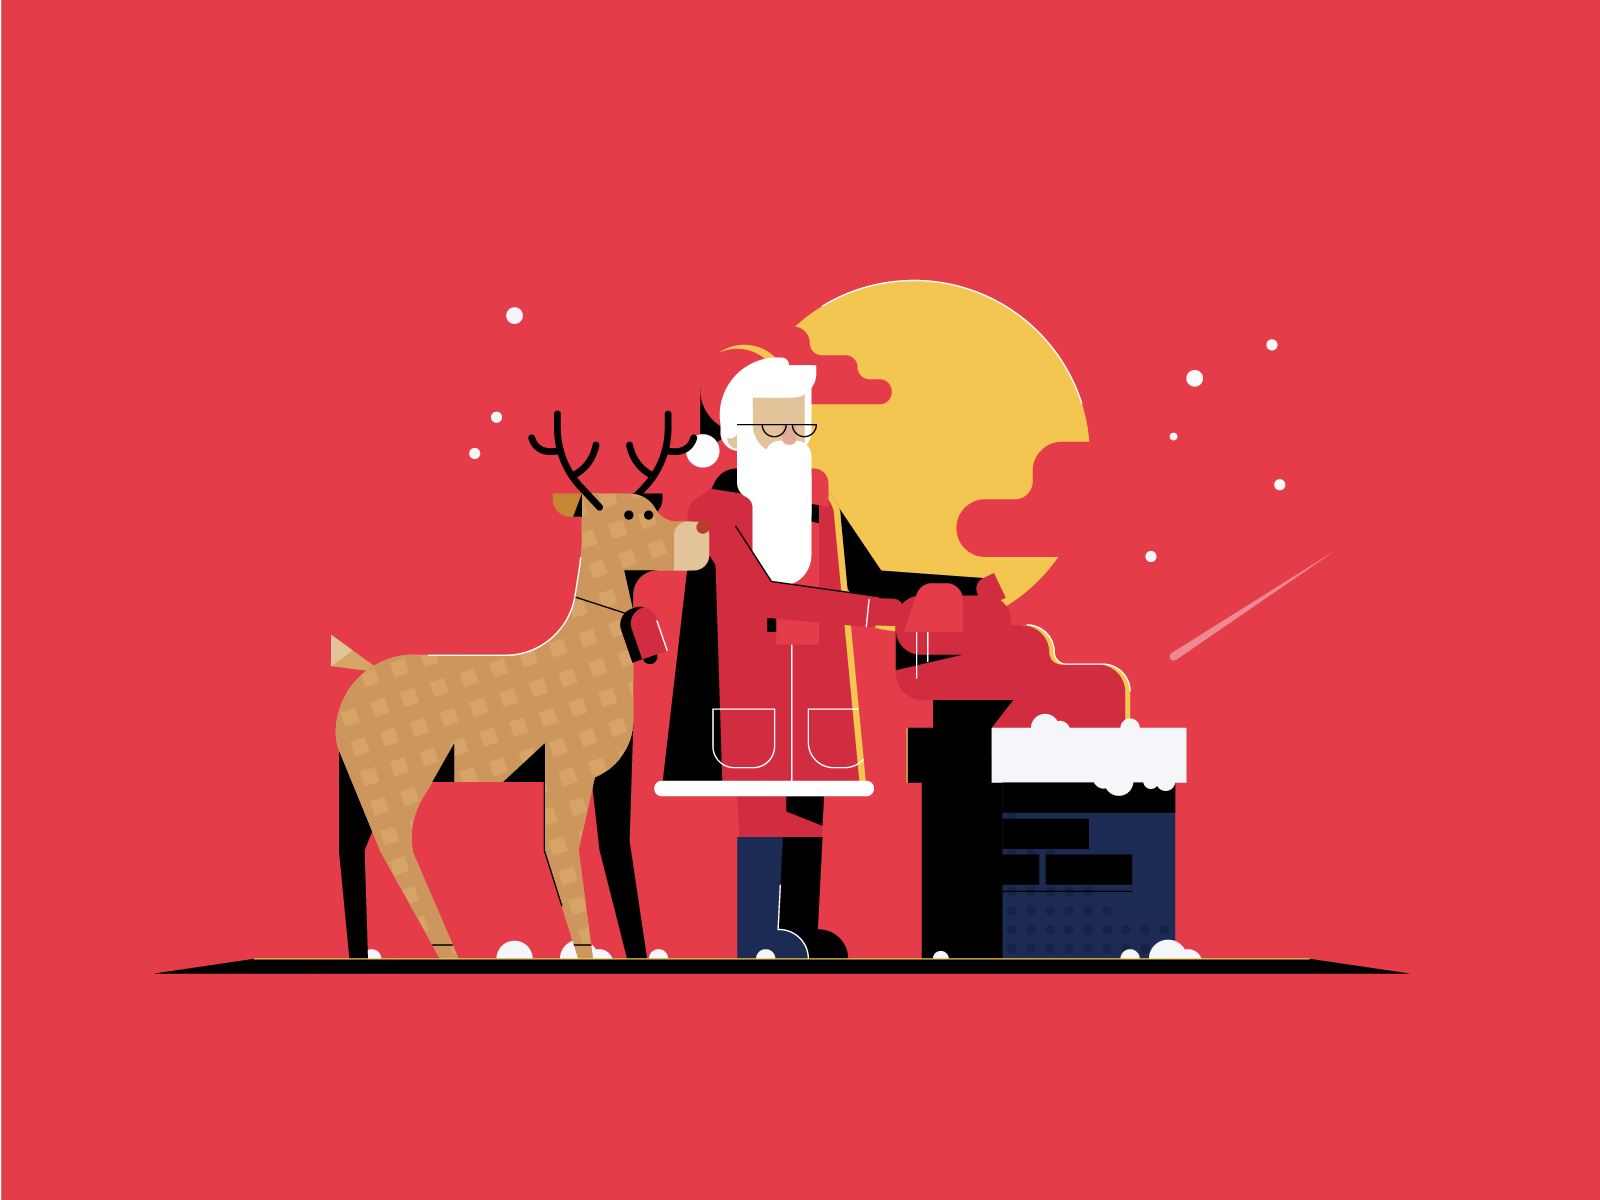 Christmas Illustrations.Festive Christmas Illustrations By Gytis Jonaitis For Flair